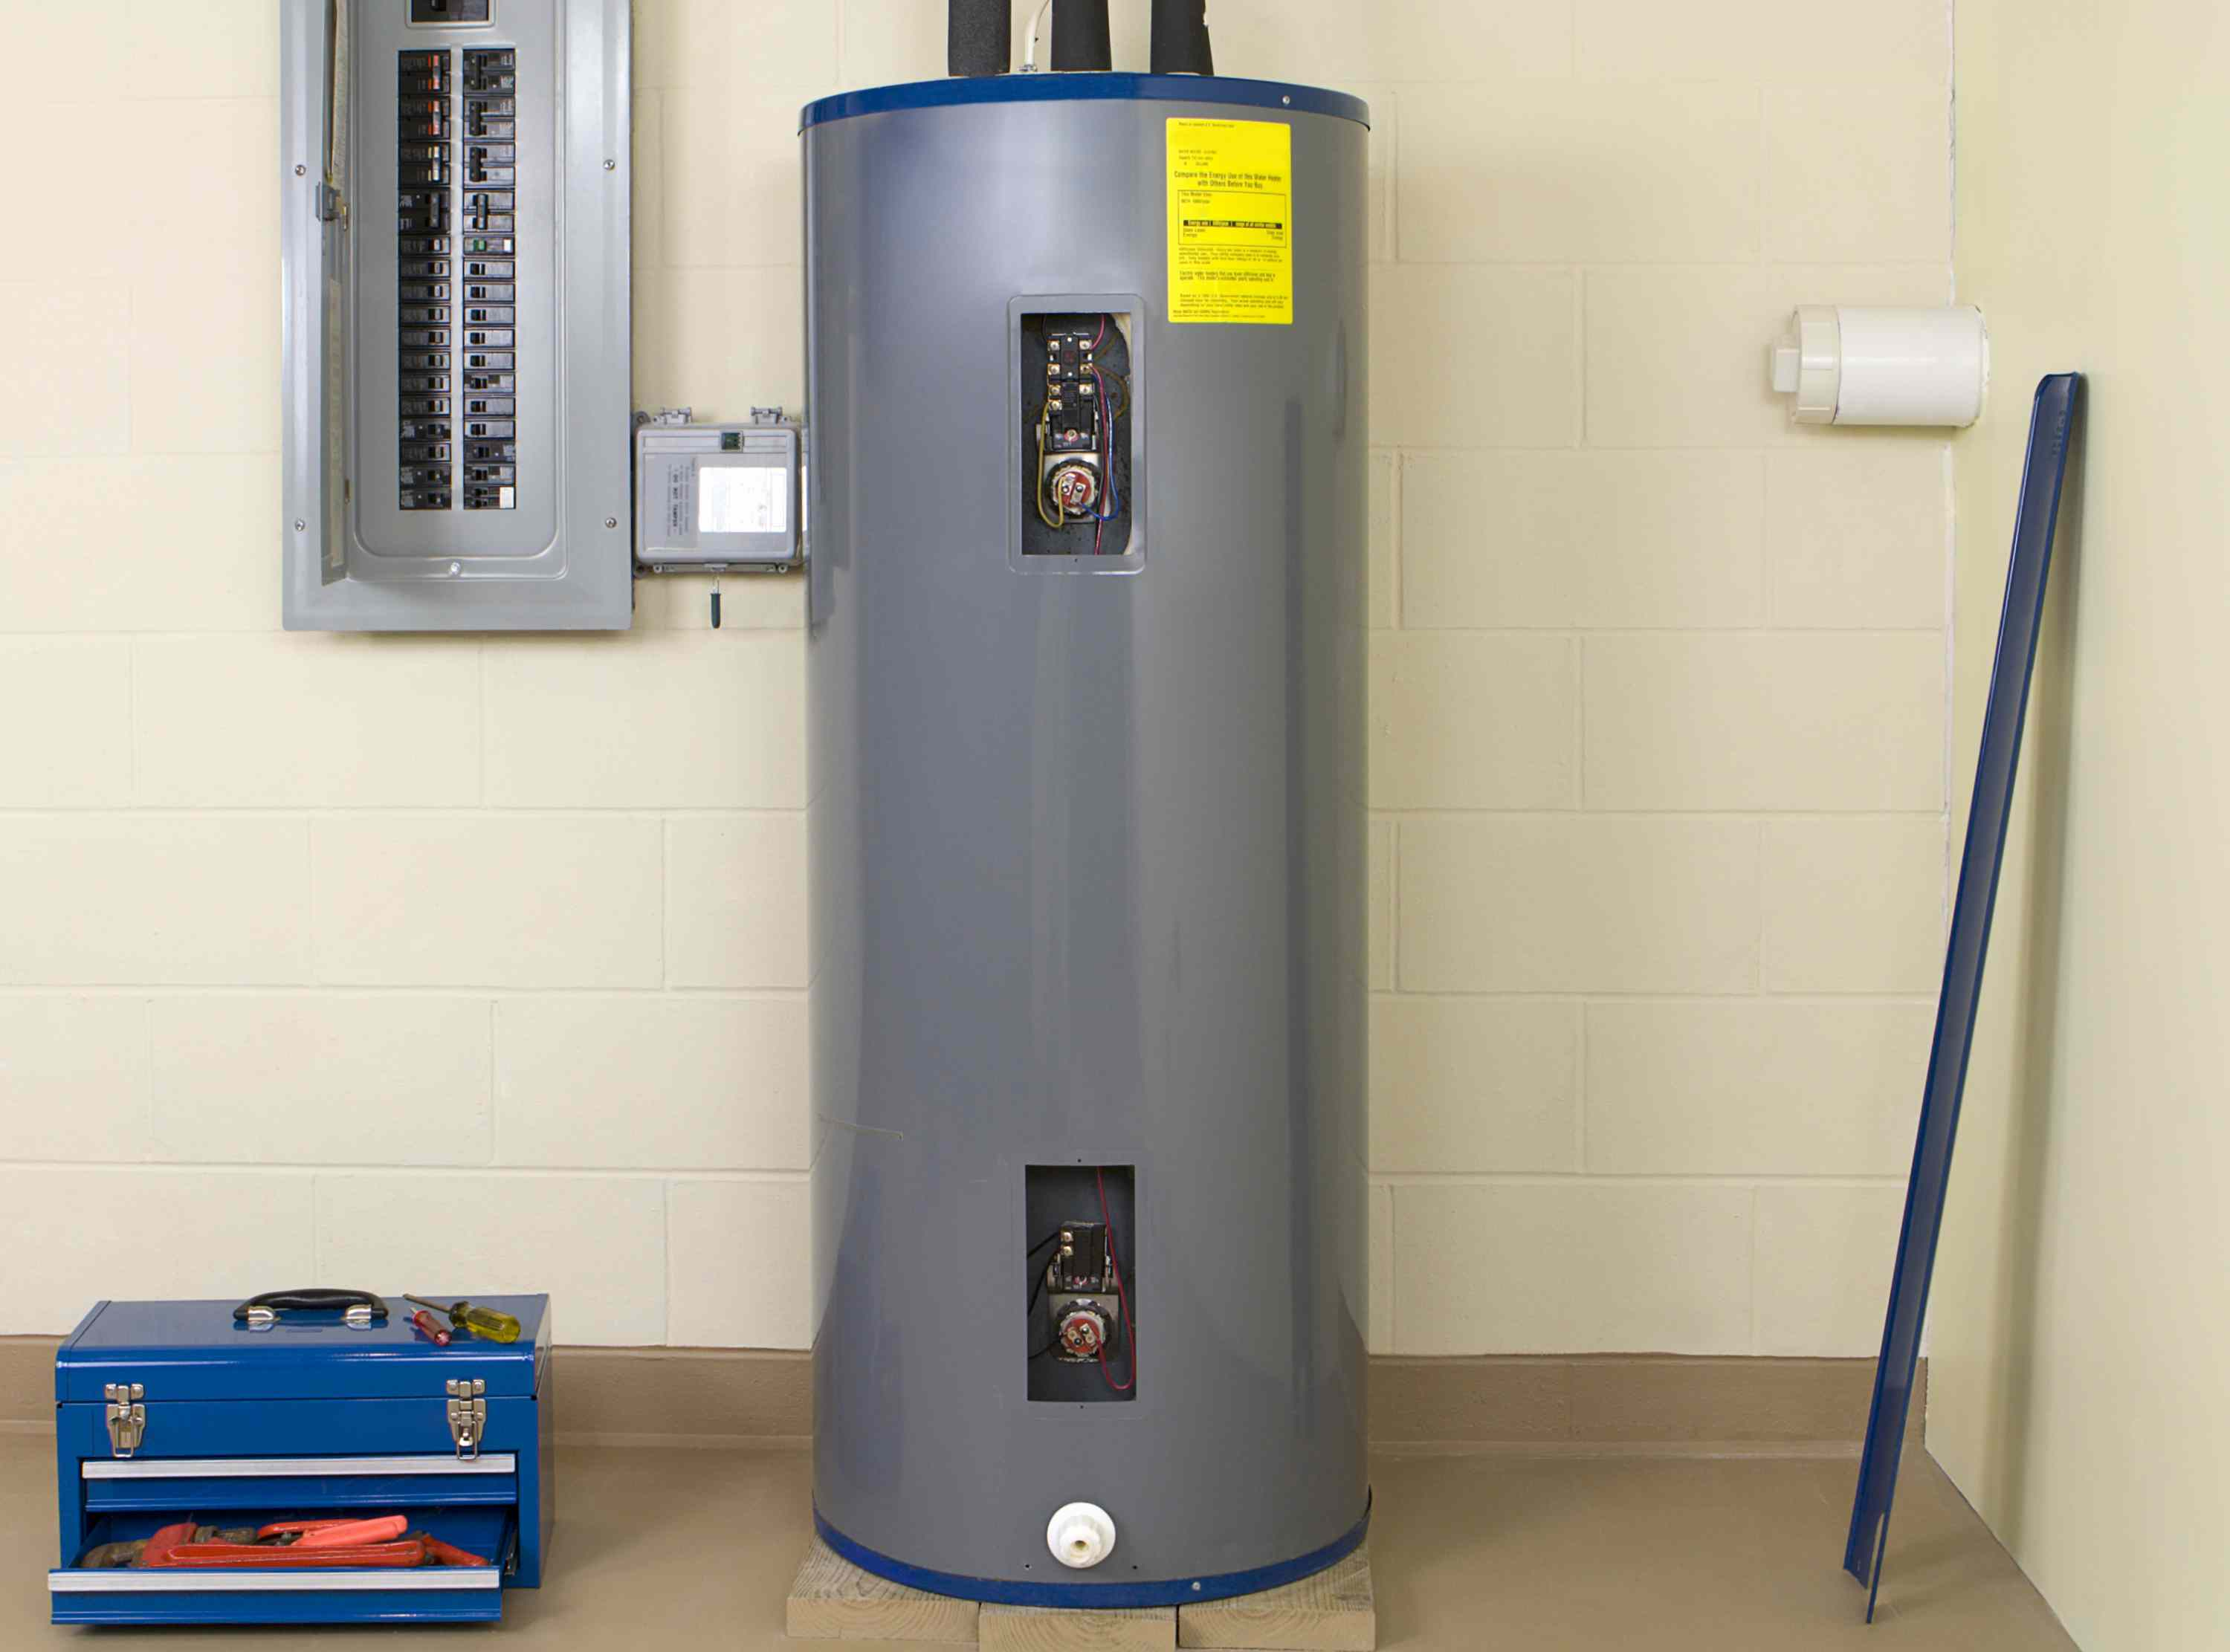 How To Troubleshoot Electric Hot Water Heater Problems Testing Thermostats On Heaters